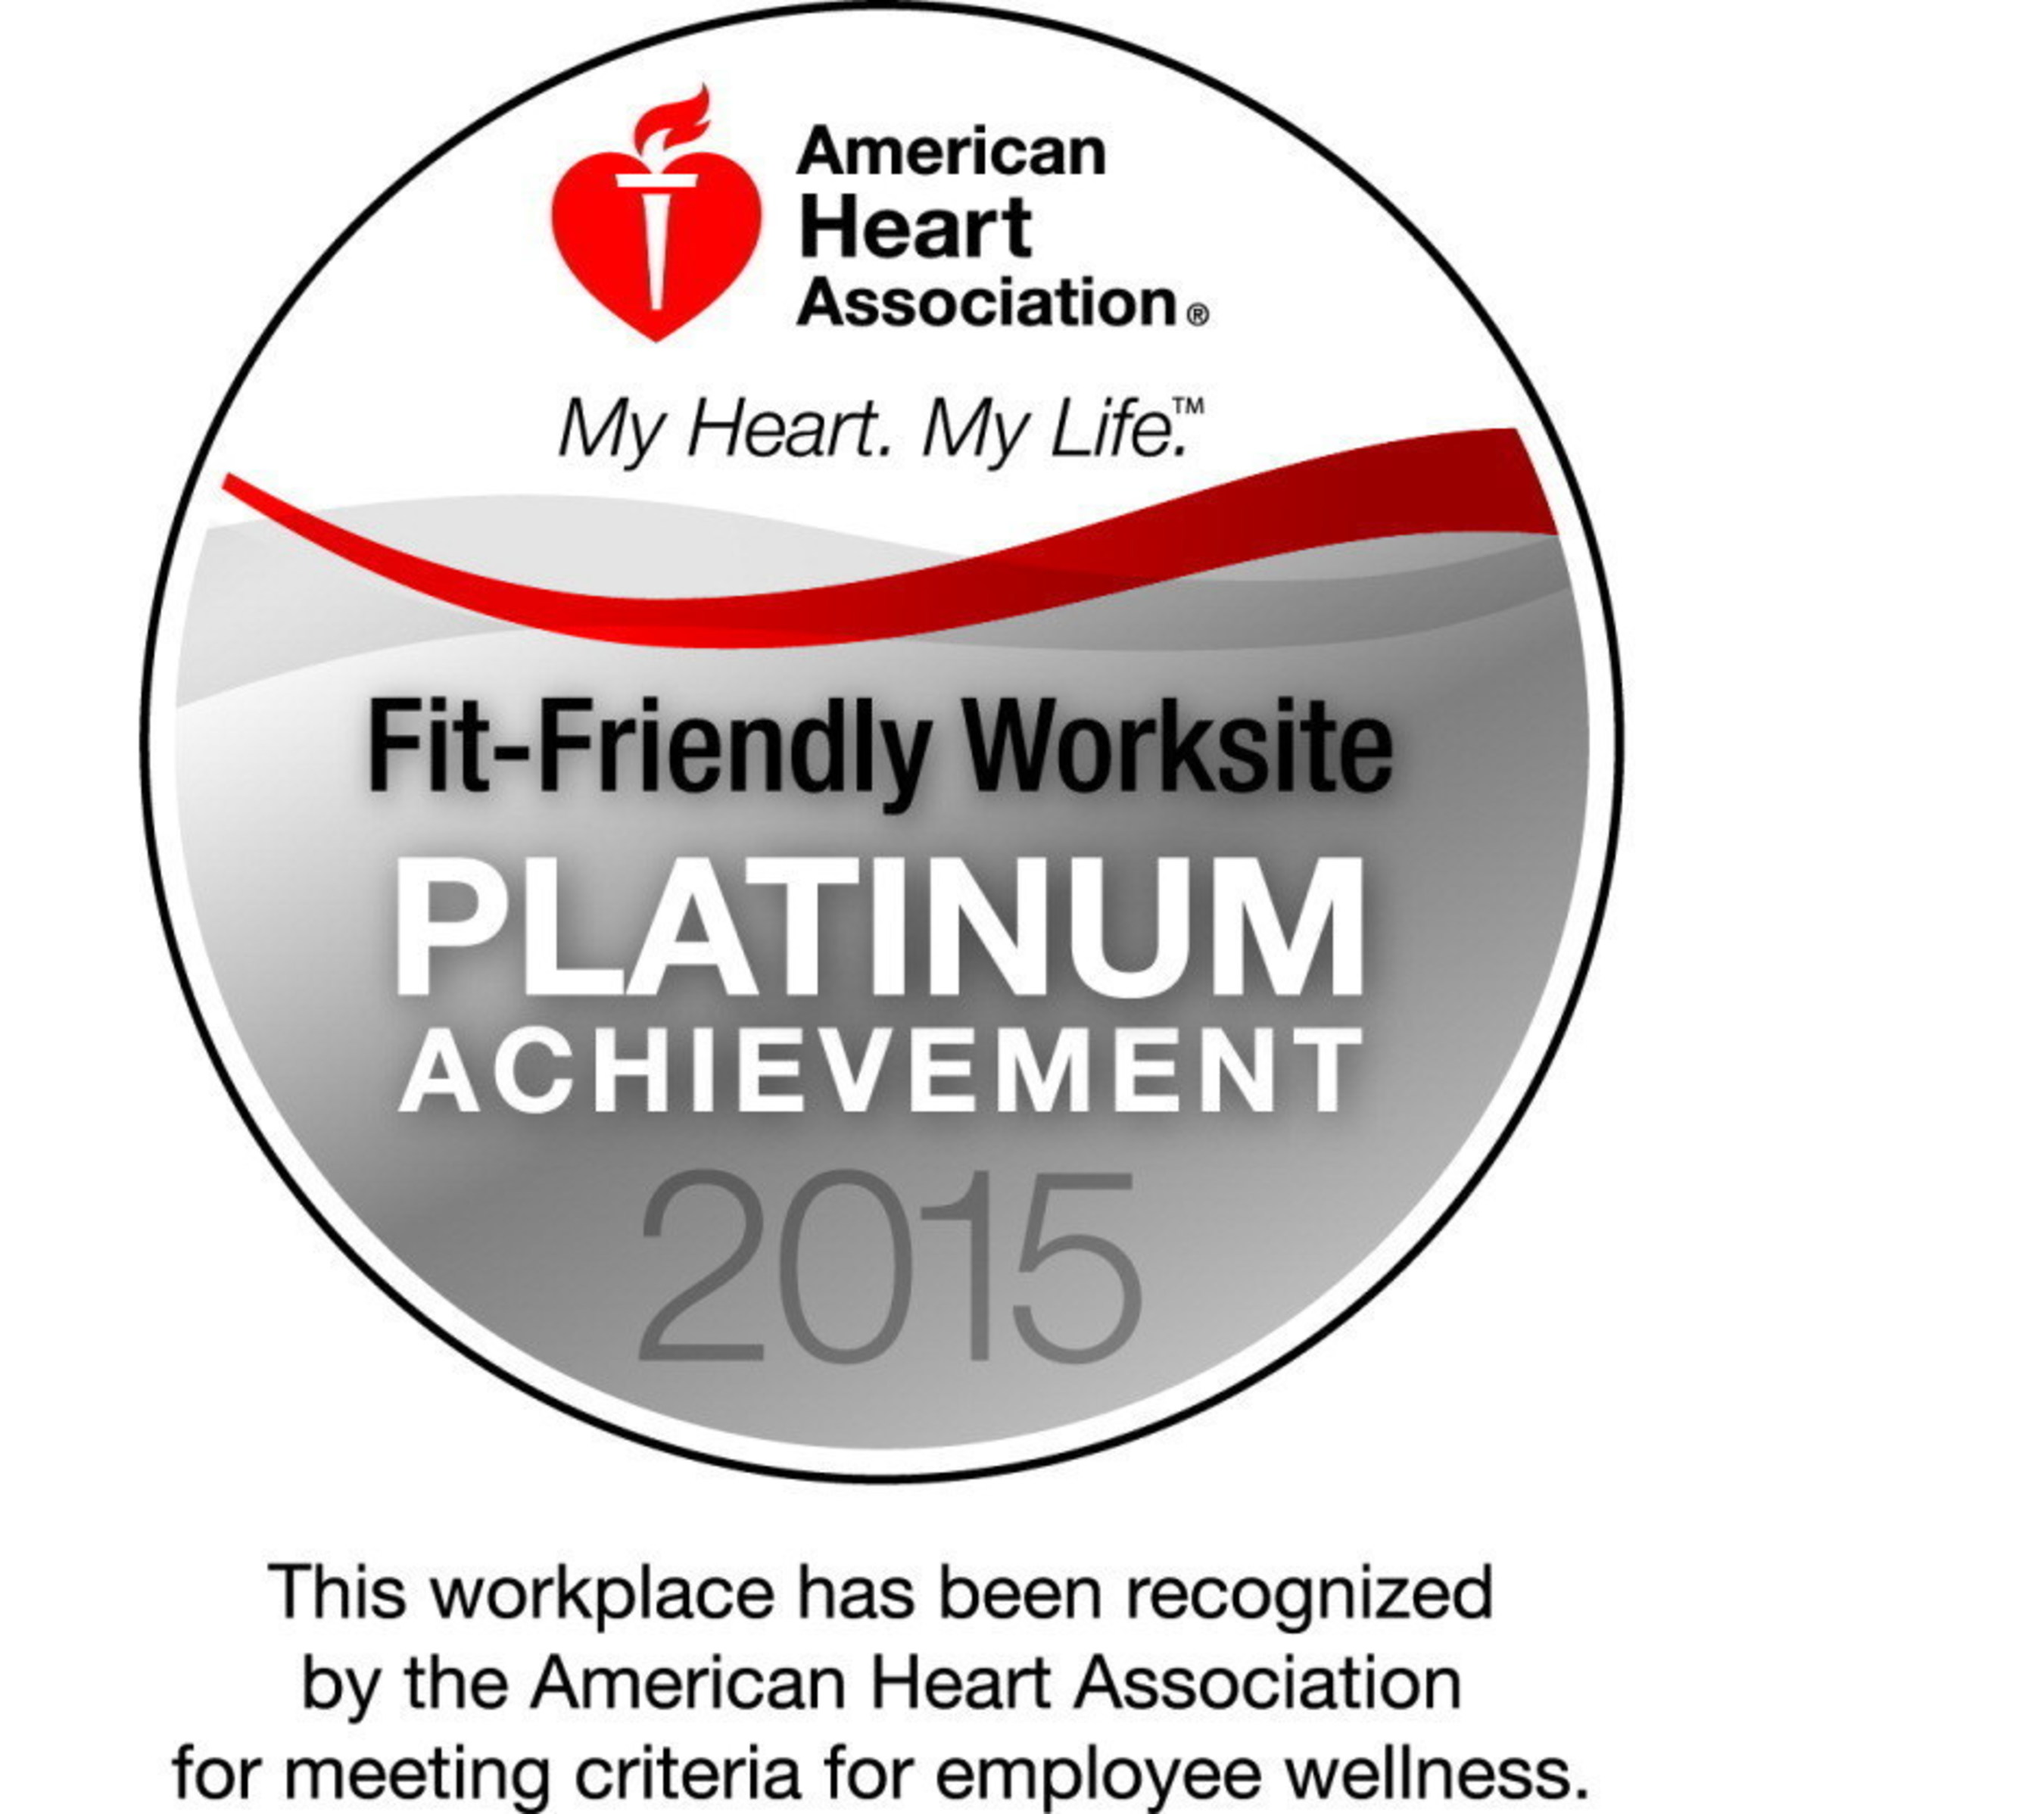 KeyBank Recognized As An American Heart Association Fit-Friendly Worksite